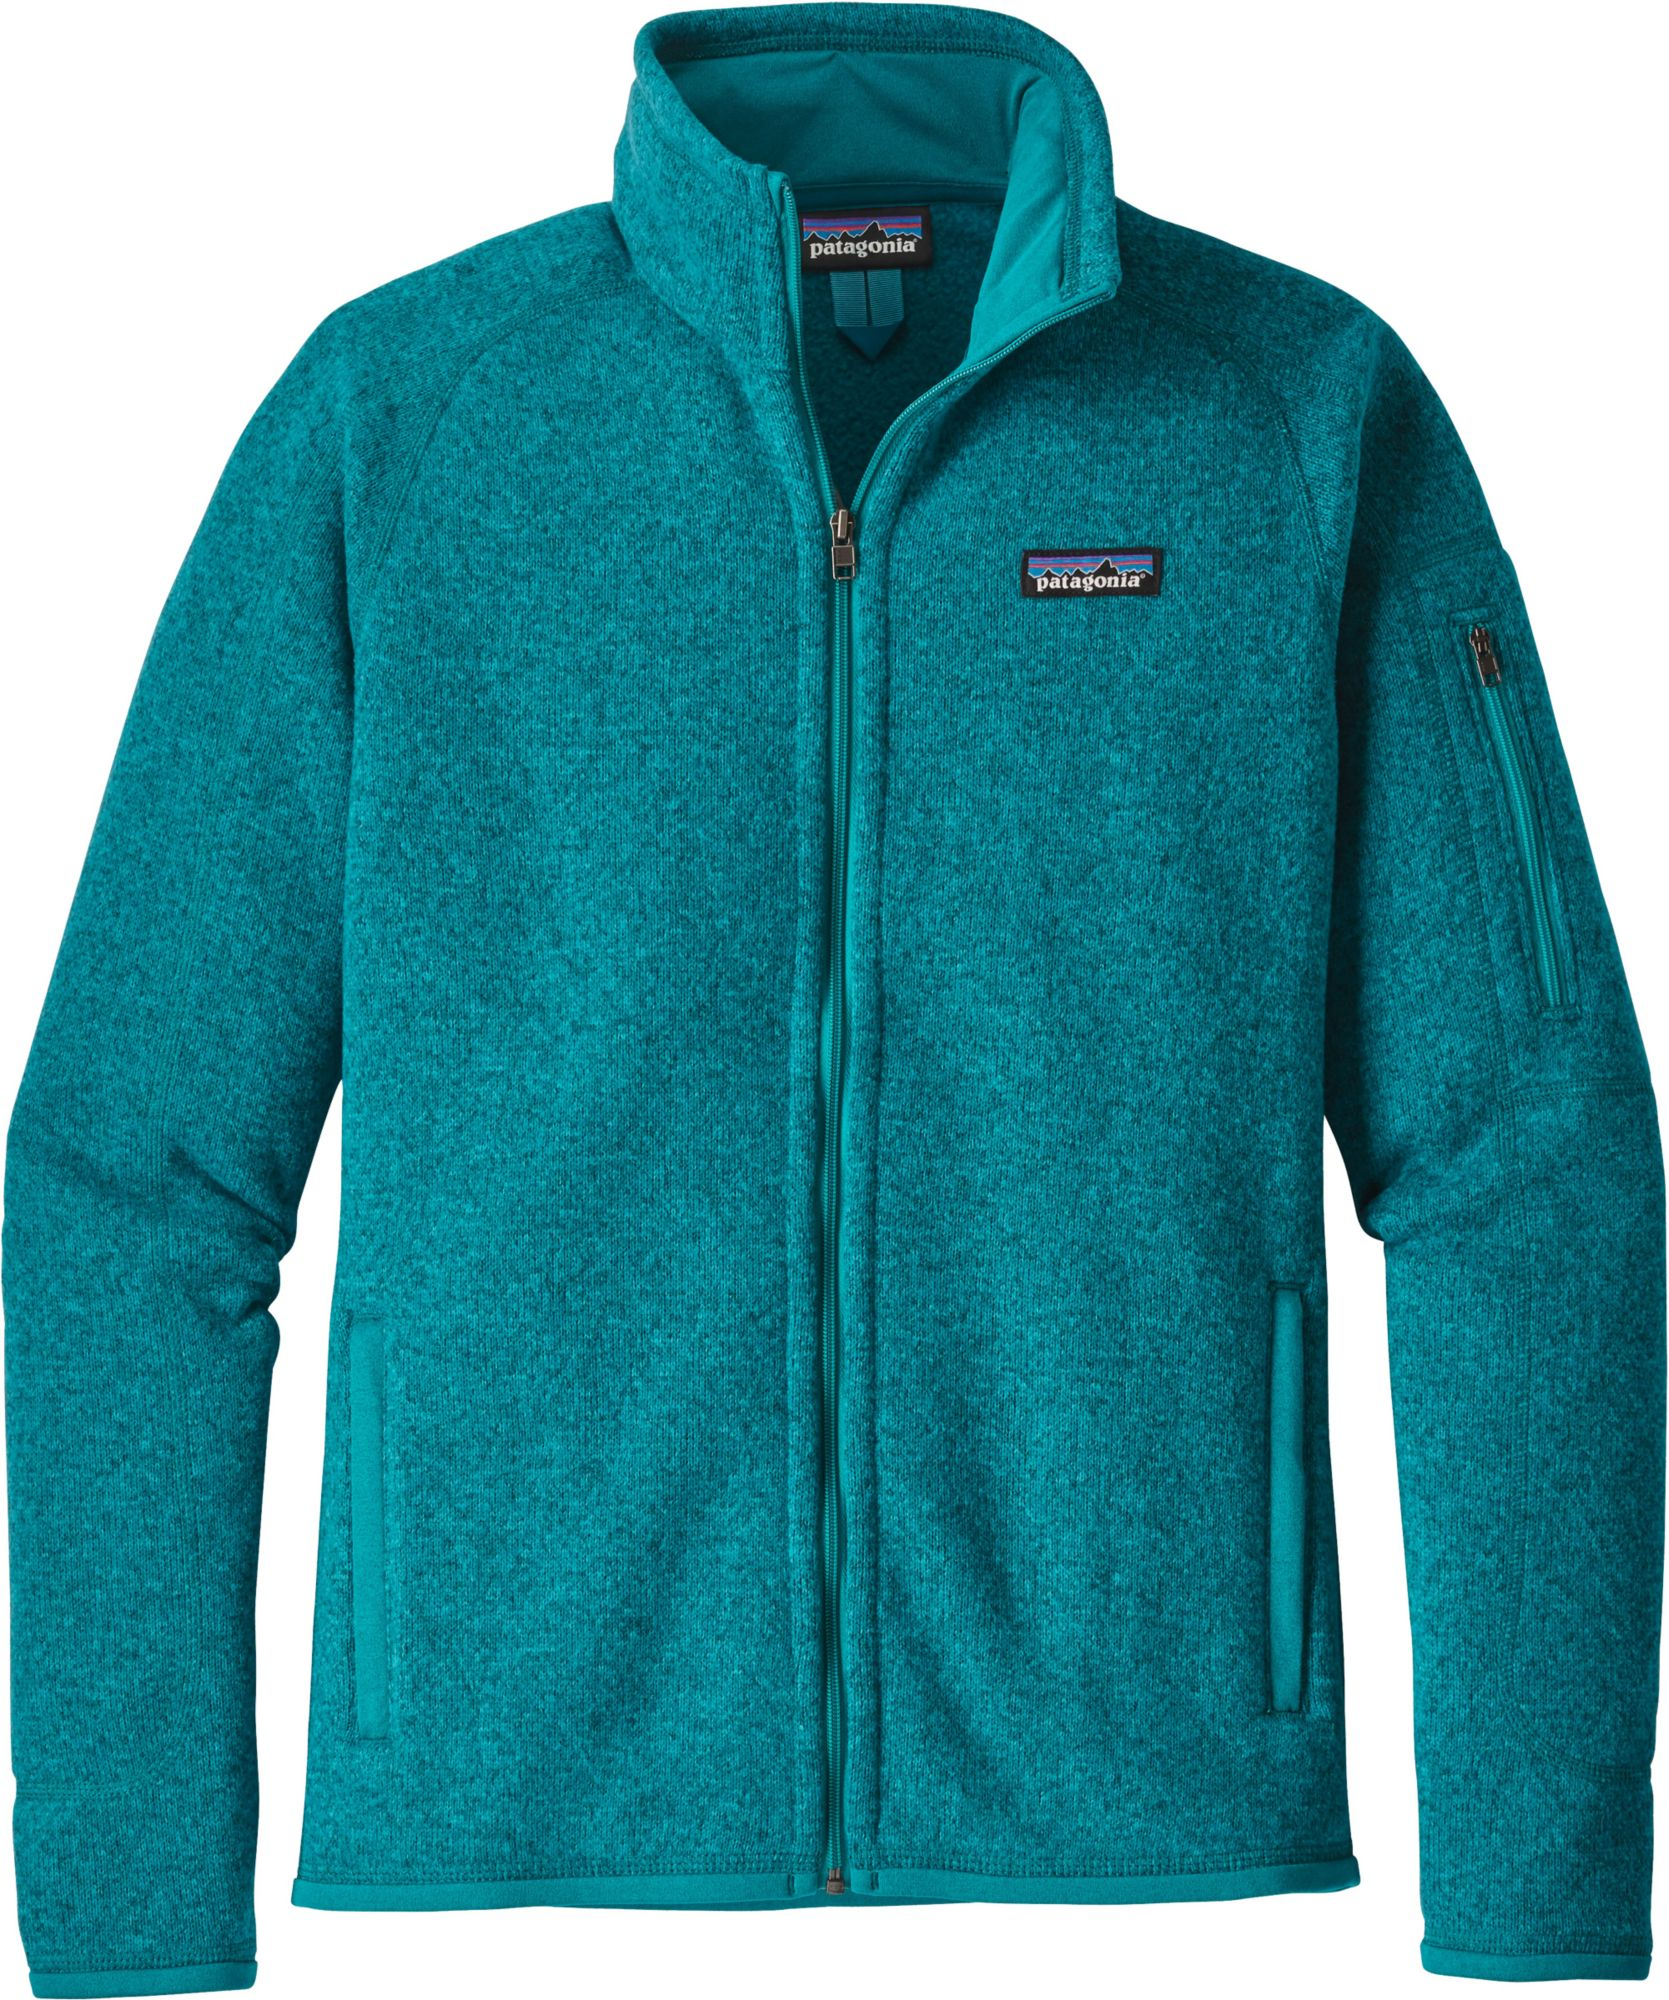 Women's Fleece Sweaters & Jackets | DICK'S Sporting Goods